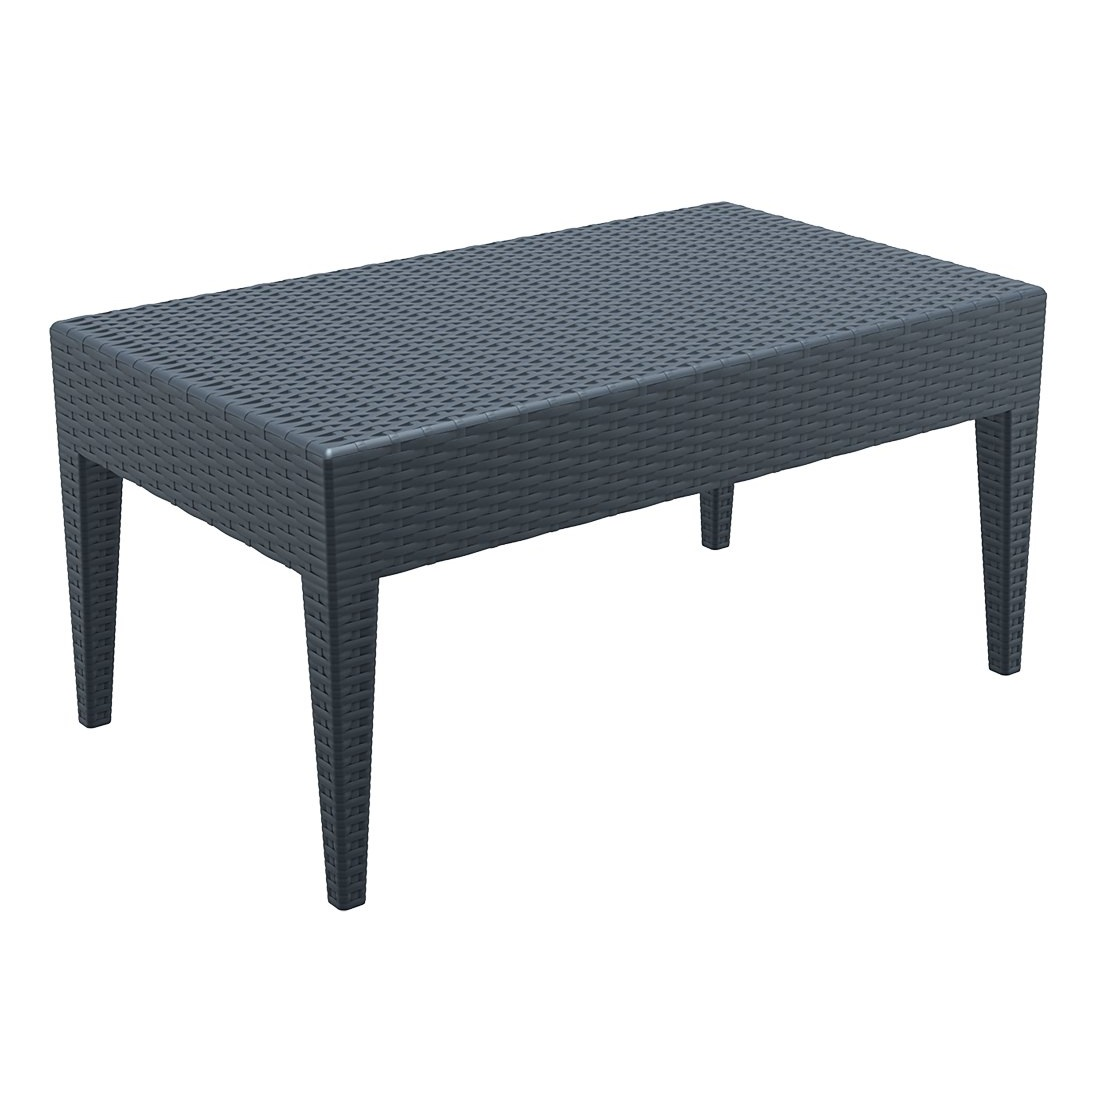 Tequila Lounge Table - Anthracite